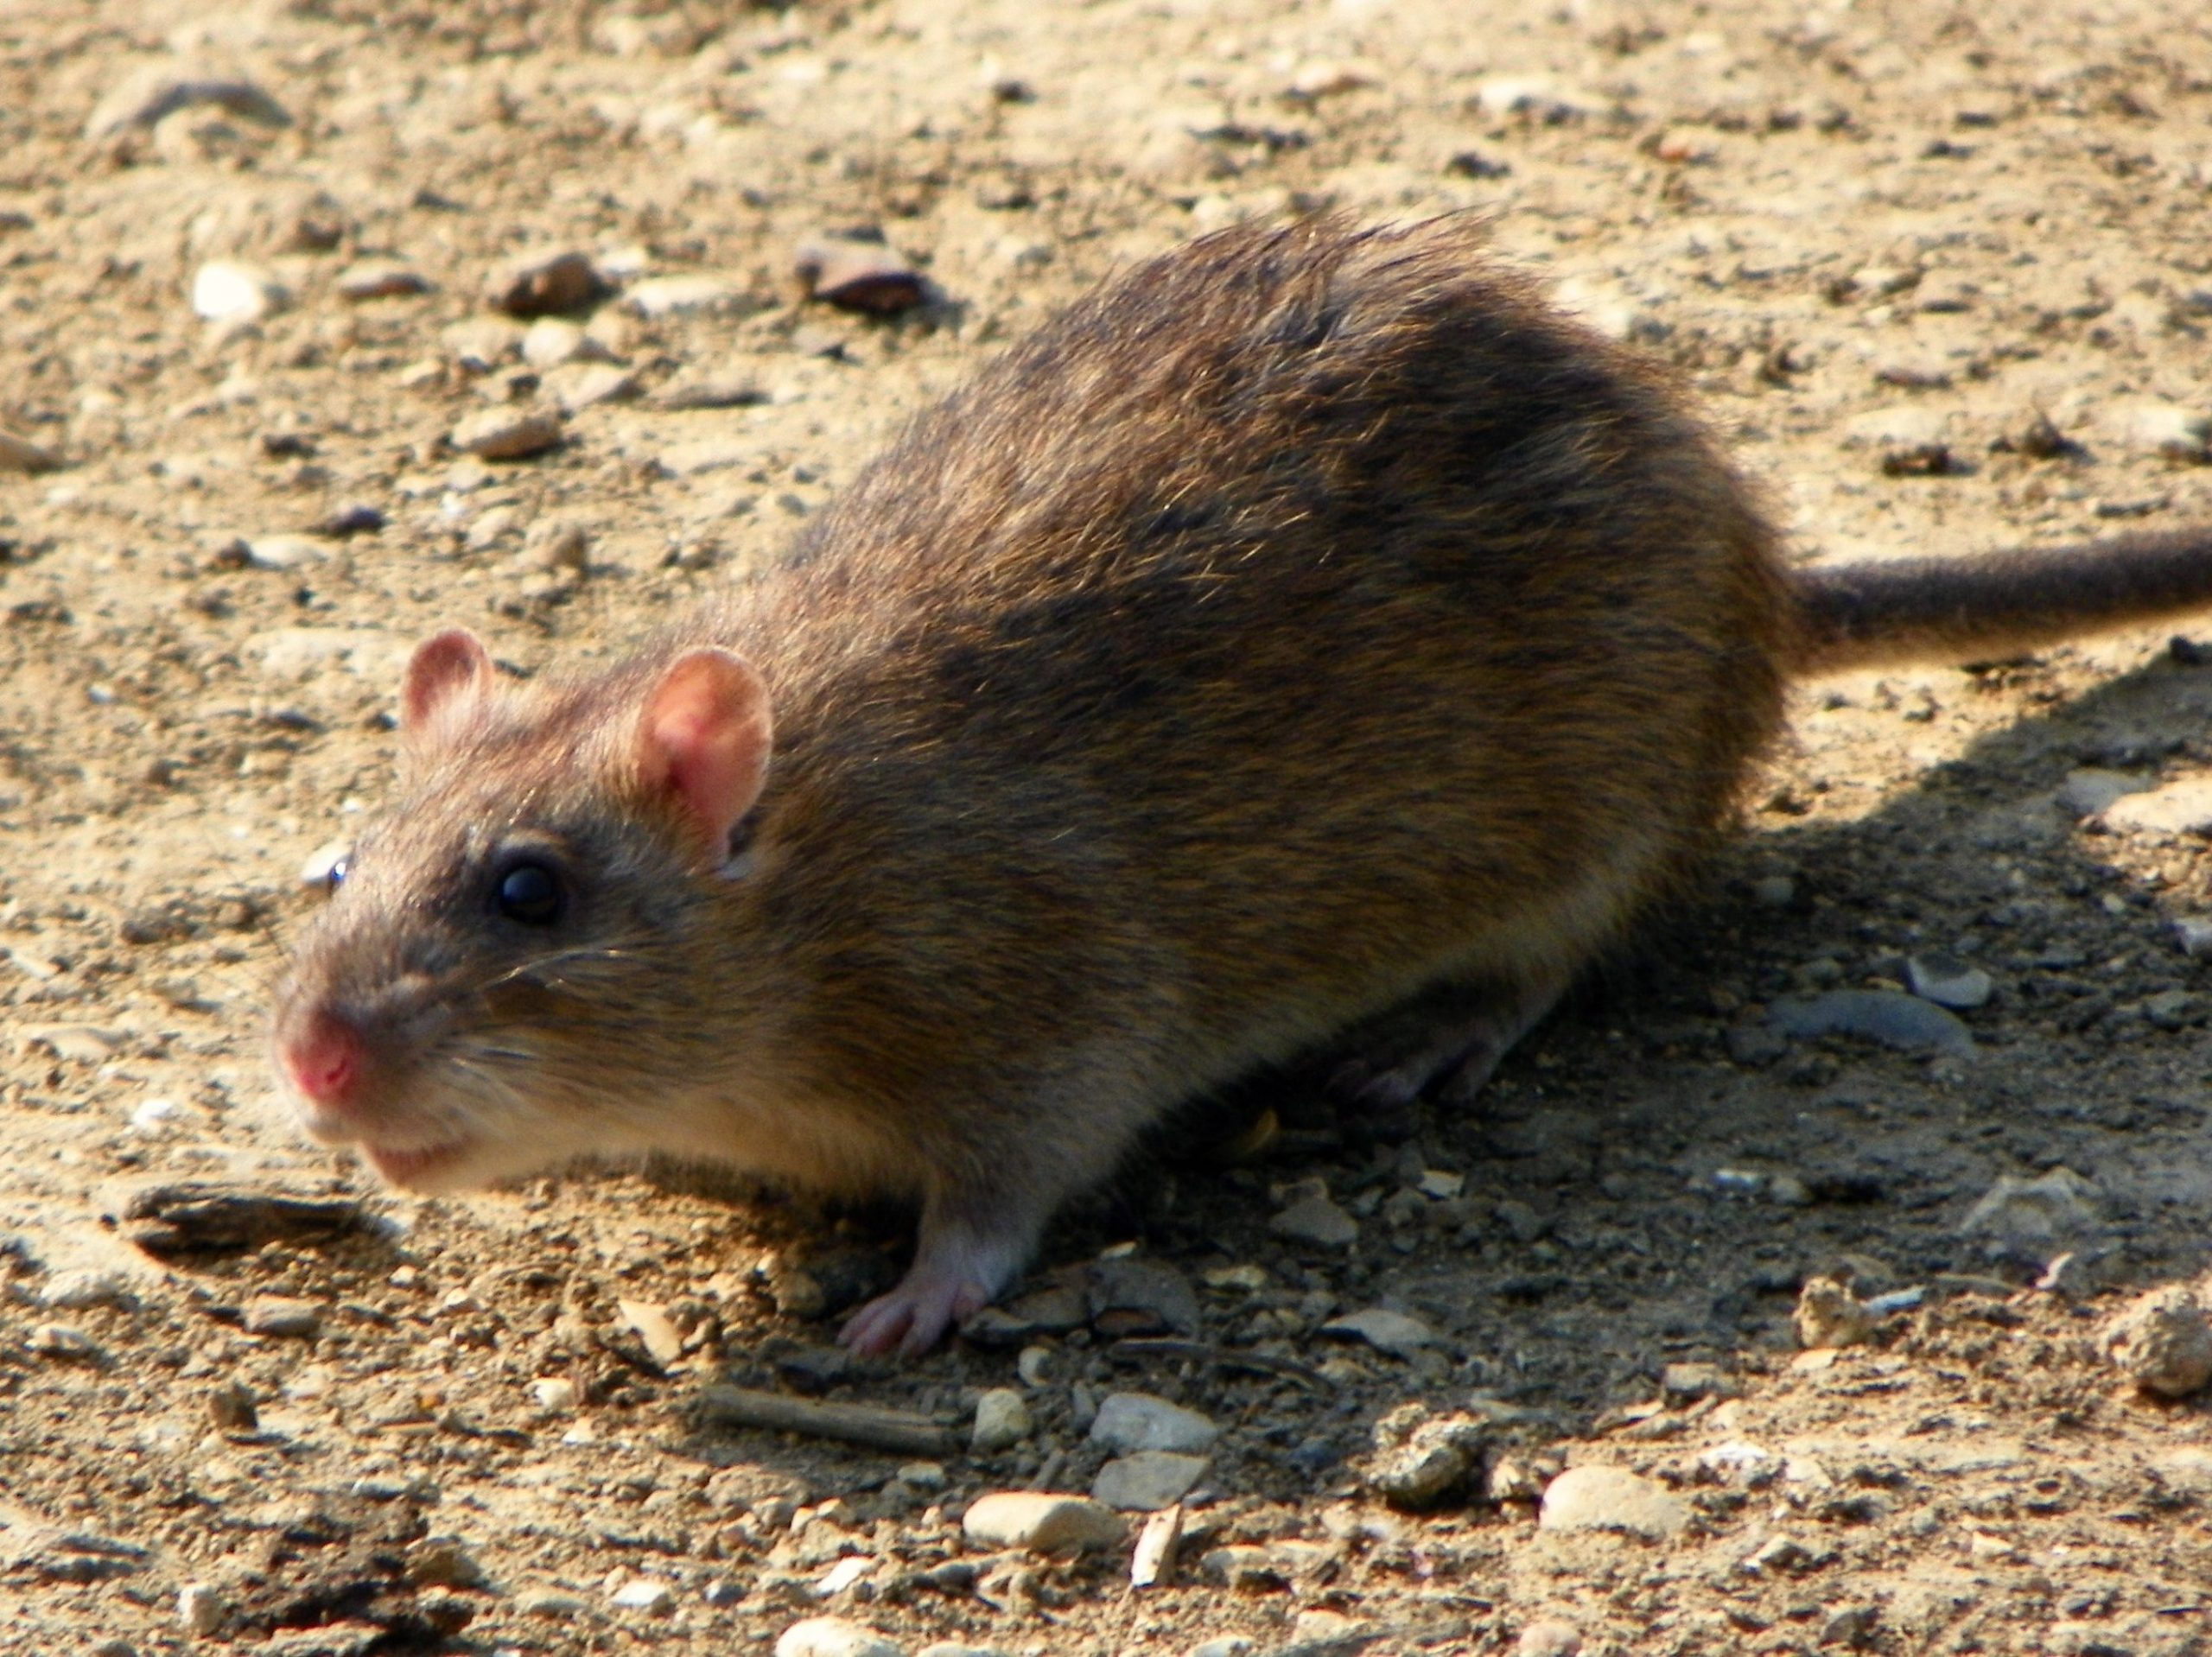 Local pest control expert says the rat problem in Kamloops is getting worse